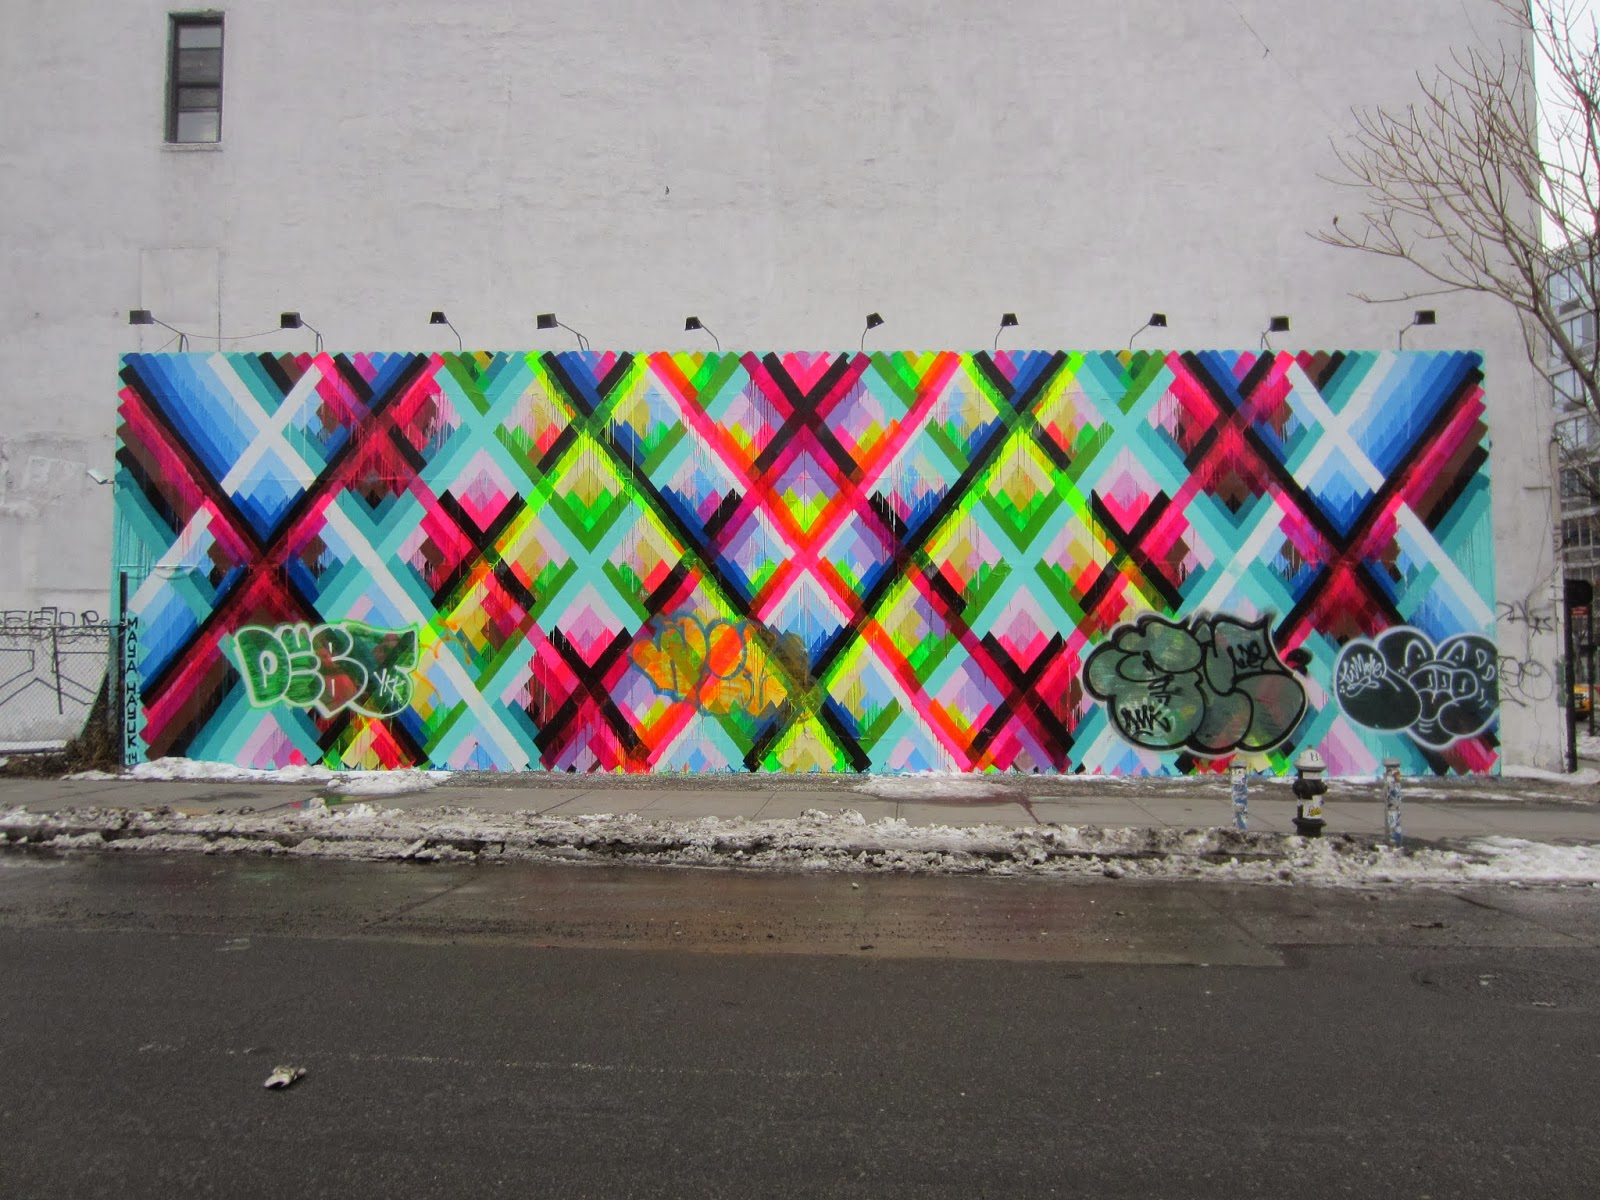 Ev grieve bombed again at the houston bowery mural wall for Bowery mural nyc